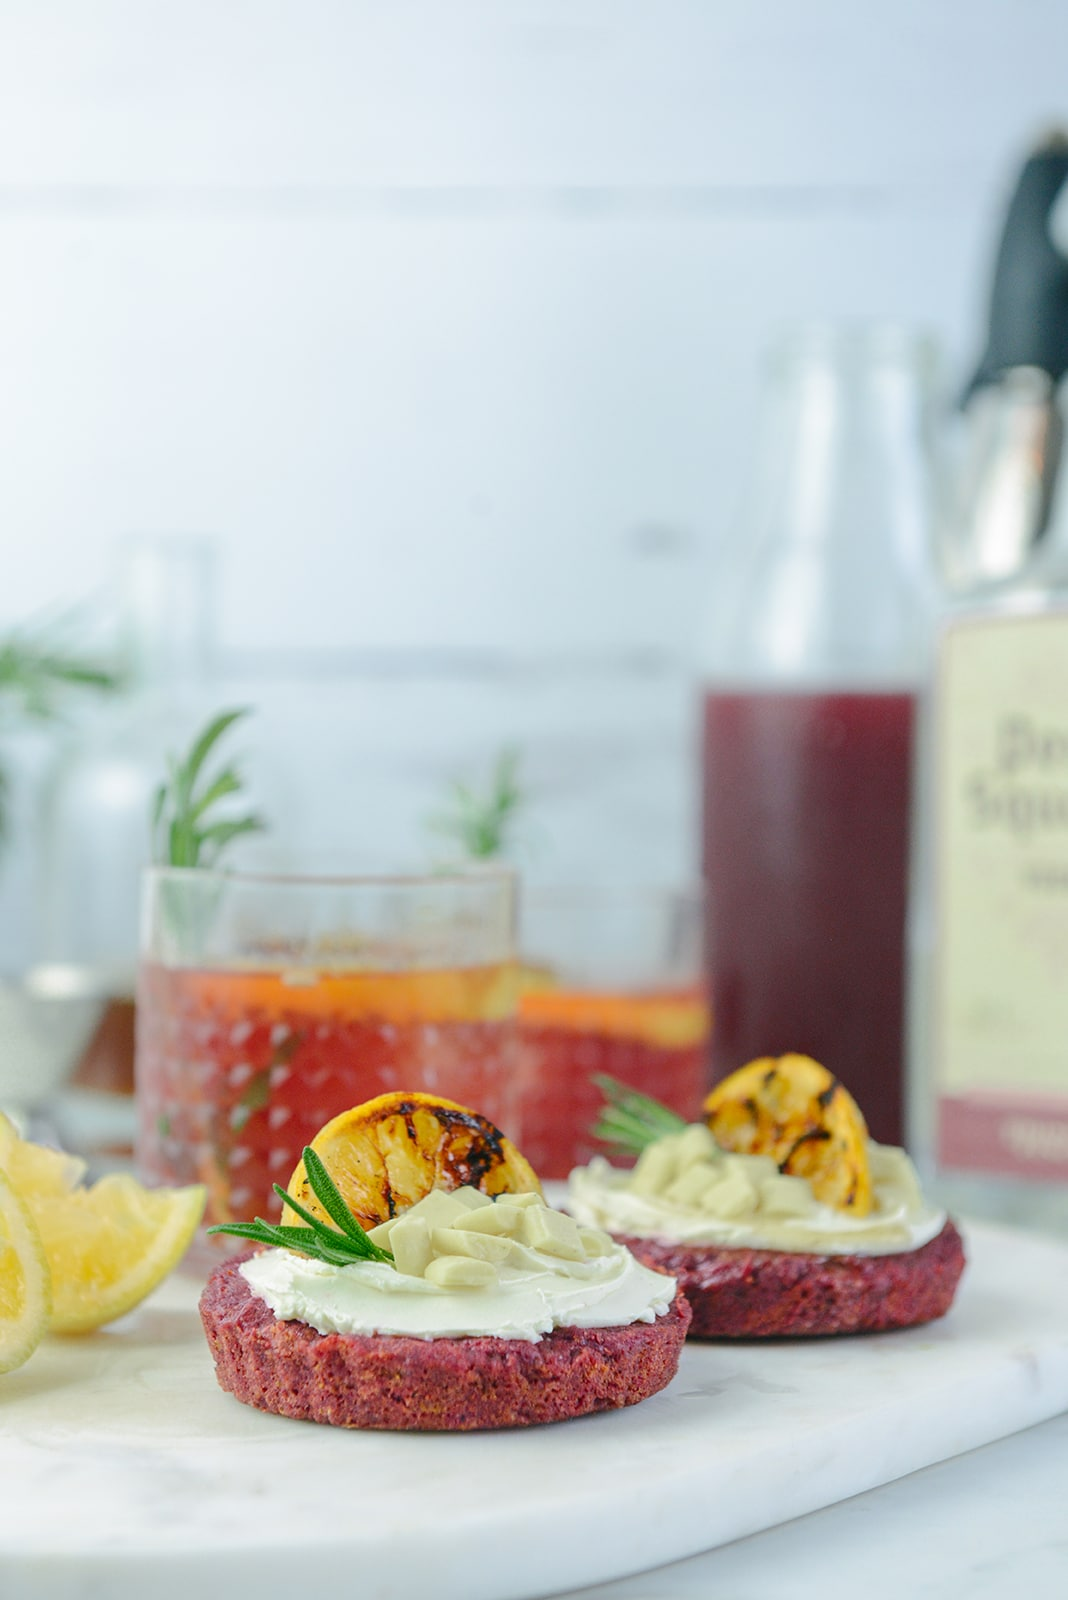 Grilled Lemon Cocktails and Healthyish Cakes // www.HealthyishFoods.com